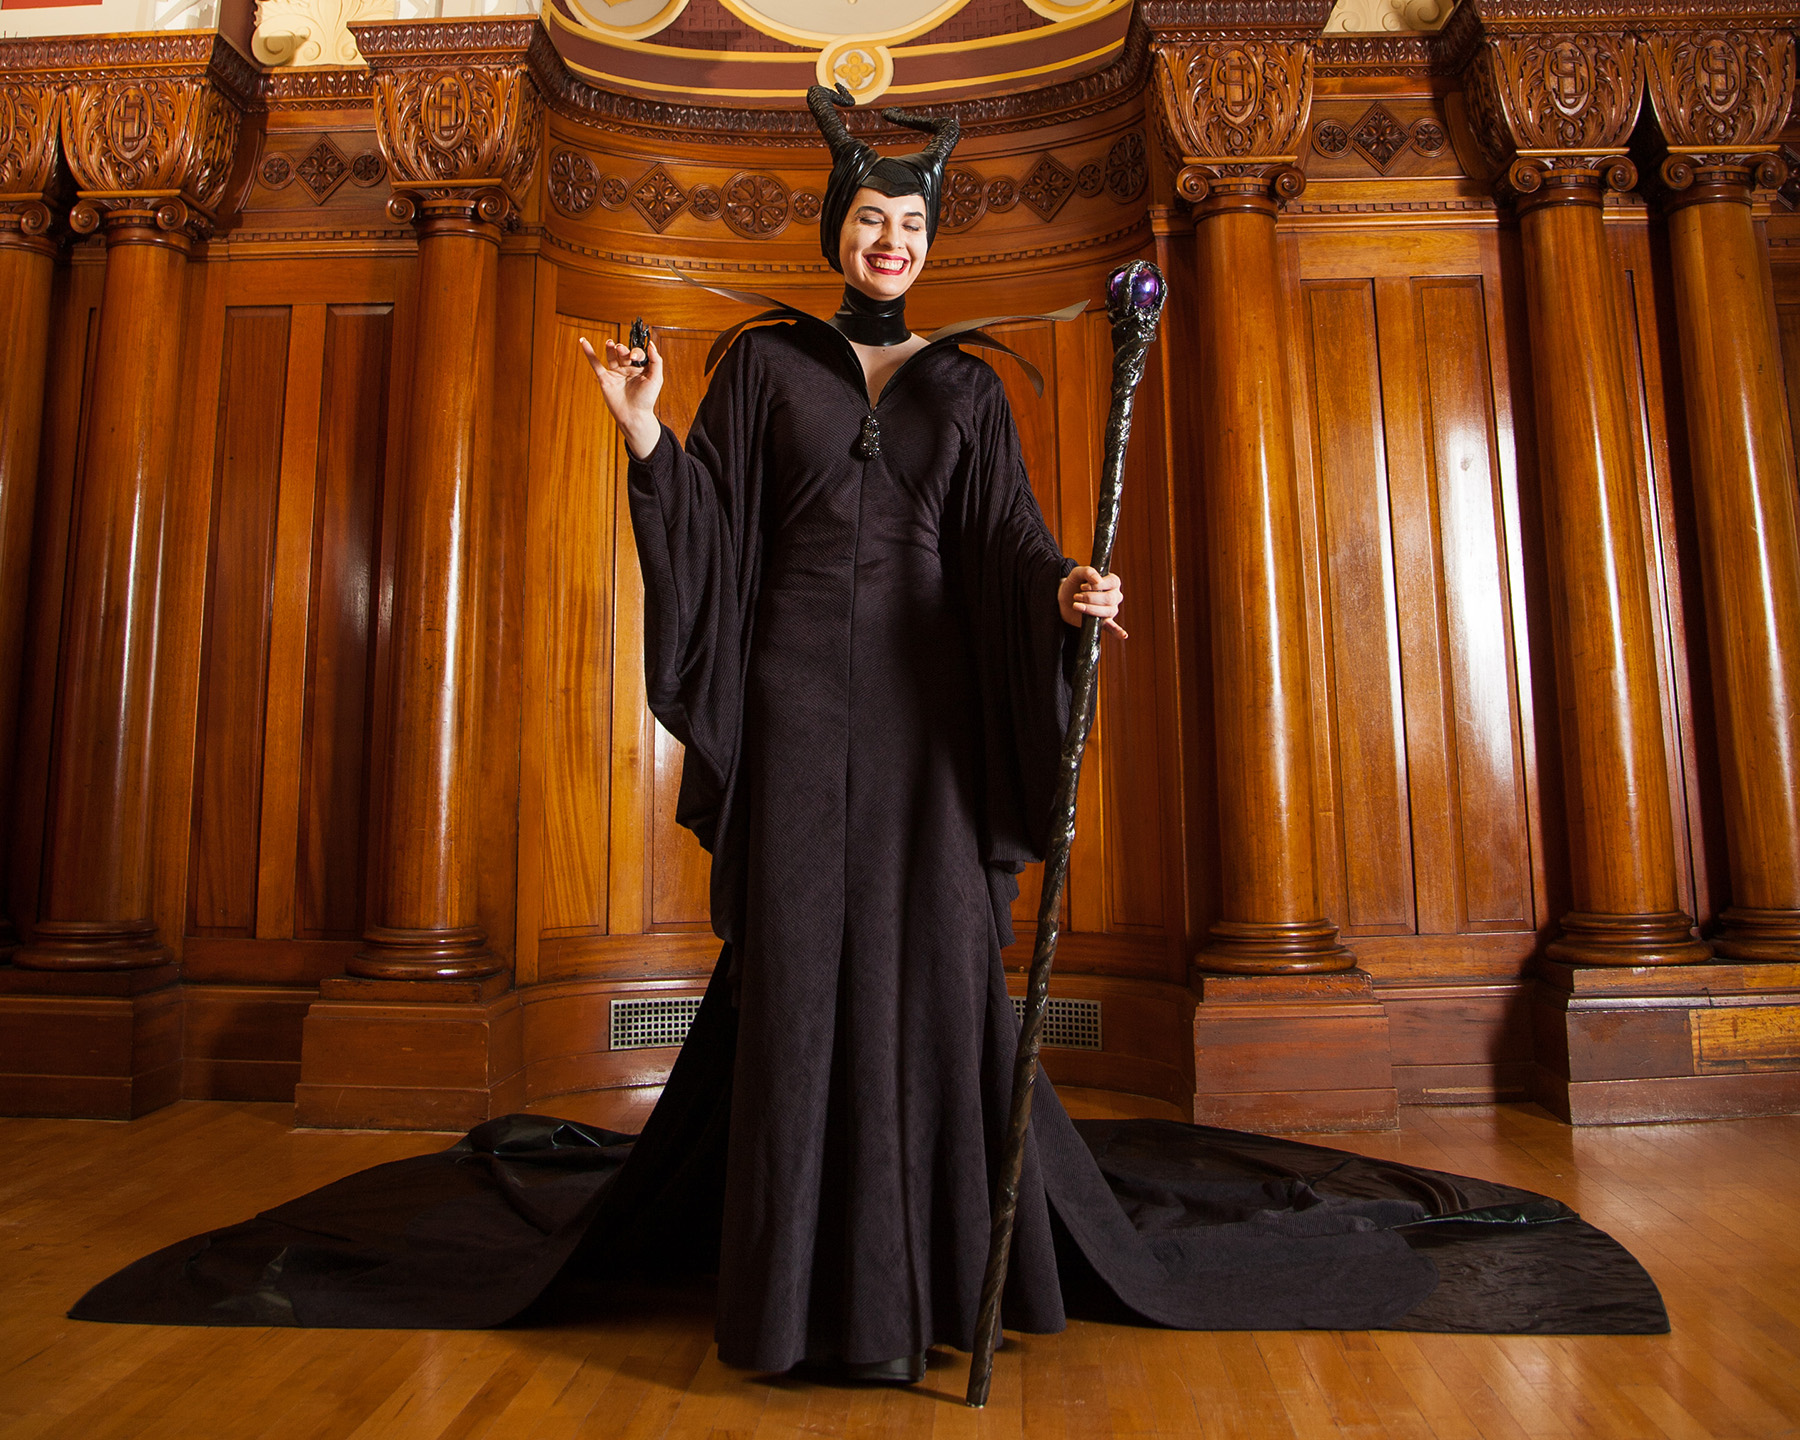 A cosplayer dressed in the full Maleficent cosplay.